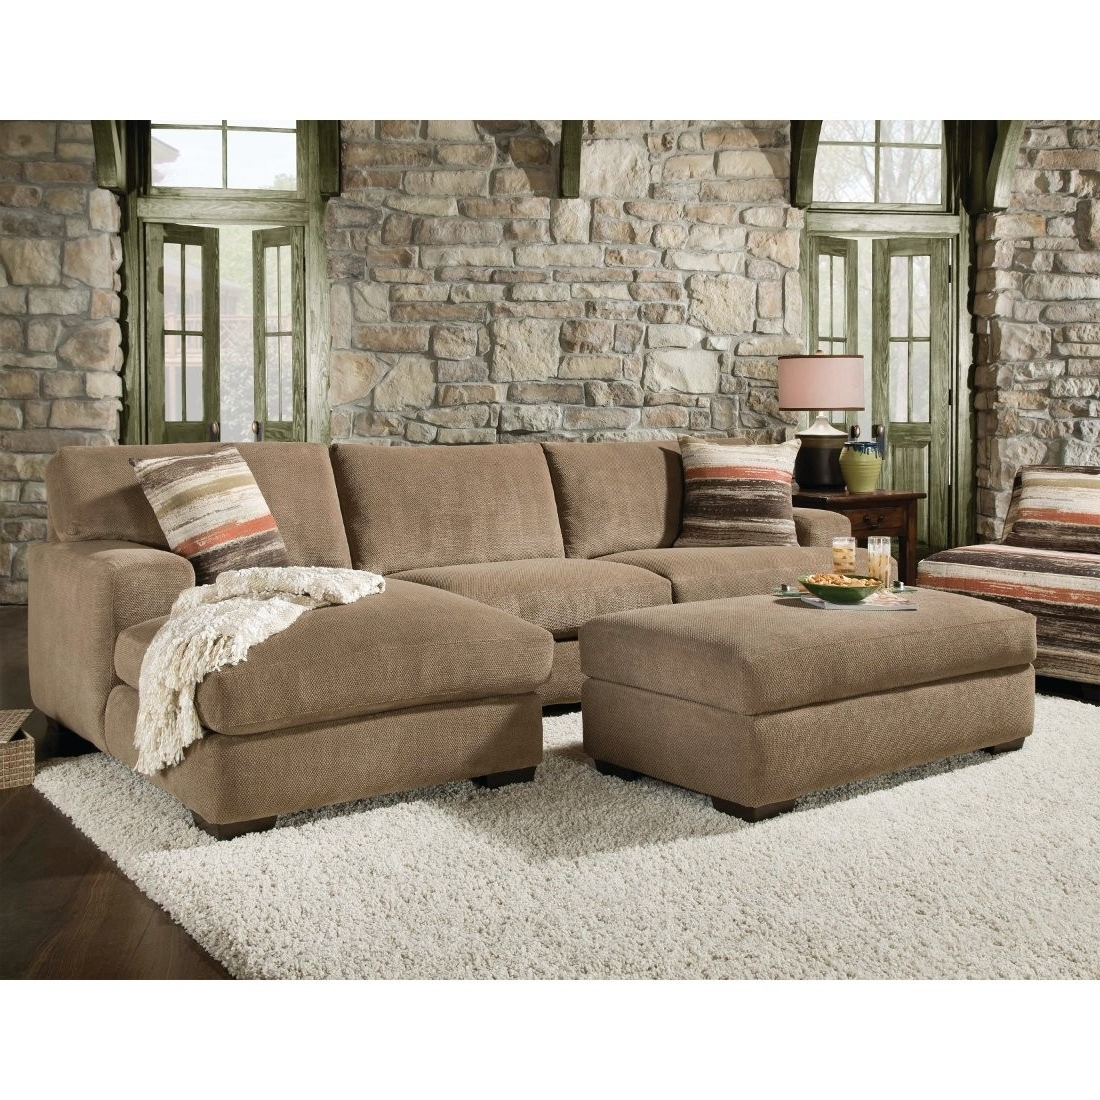 Preferred Small Sectional Sofas With Chaise And Ottoman Within Beautiful Sectional Sofa With Chaise And Ottoman Pictures (View 6 of 15)